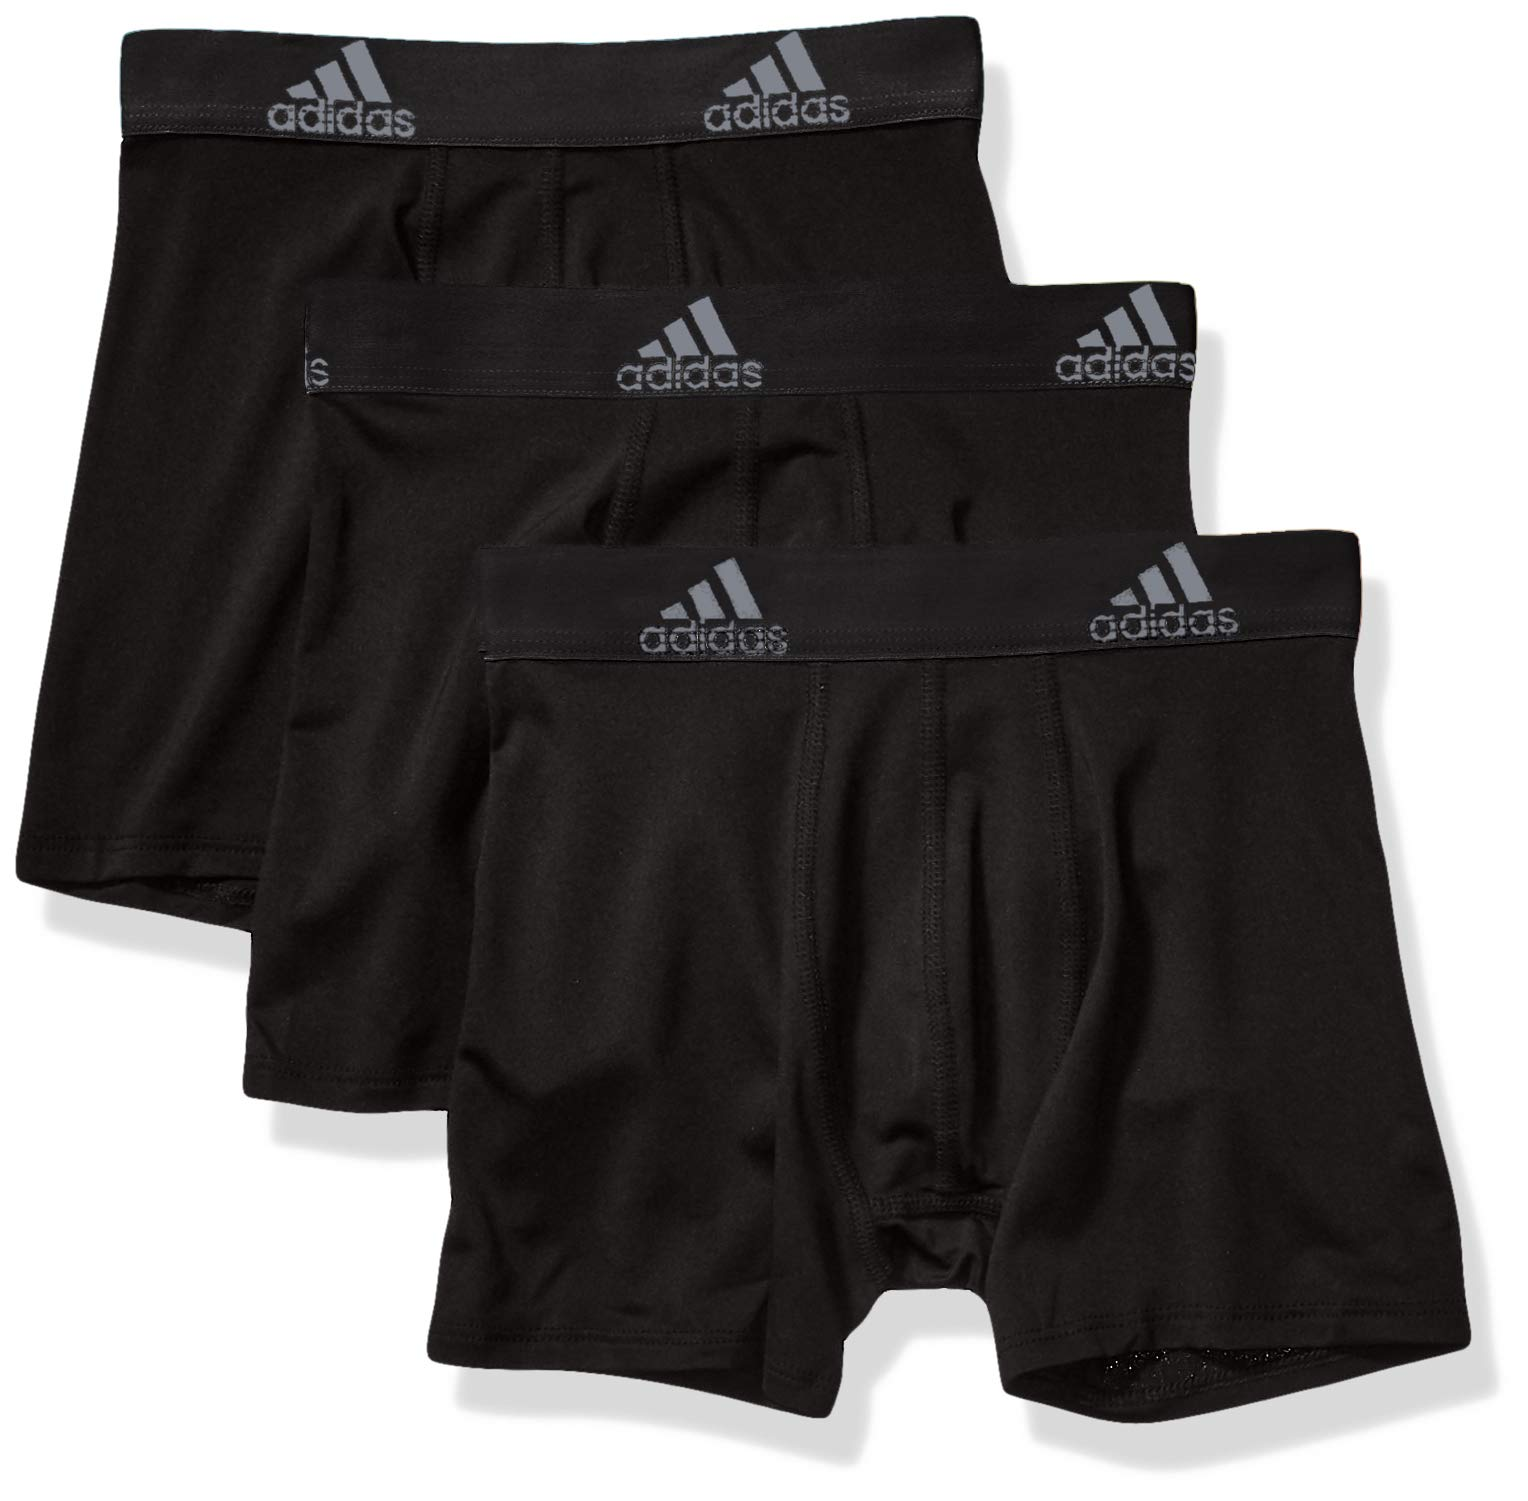 adidas Youth Kids-Boy's Performance Boxer Briefs Underwear (3-Pack), Black Black Black, LARGE by adidas